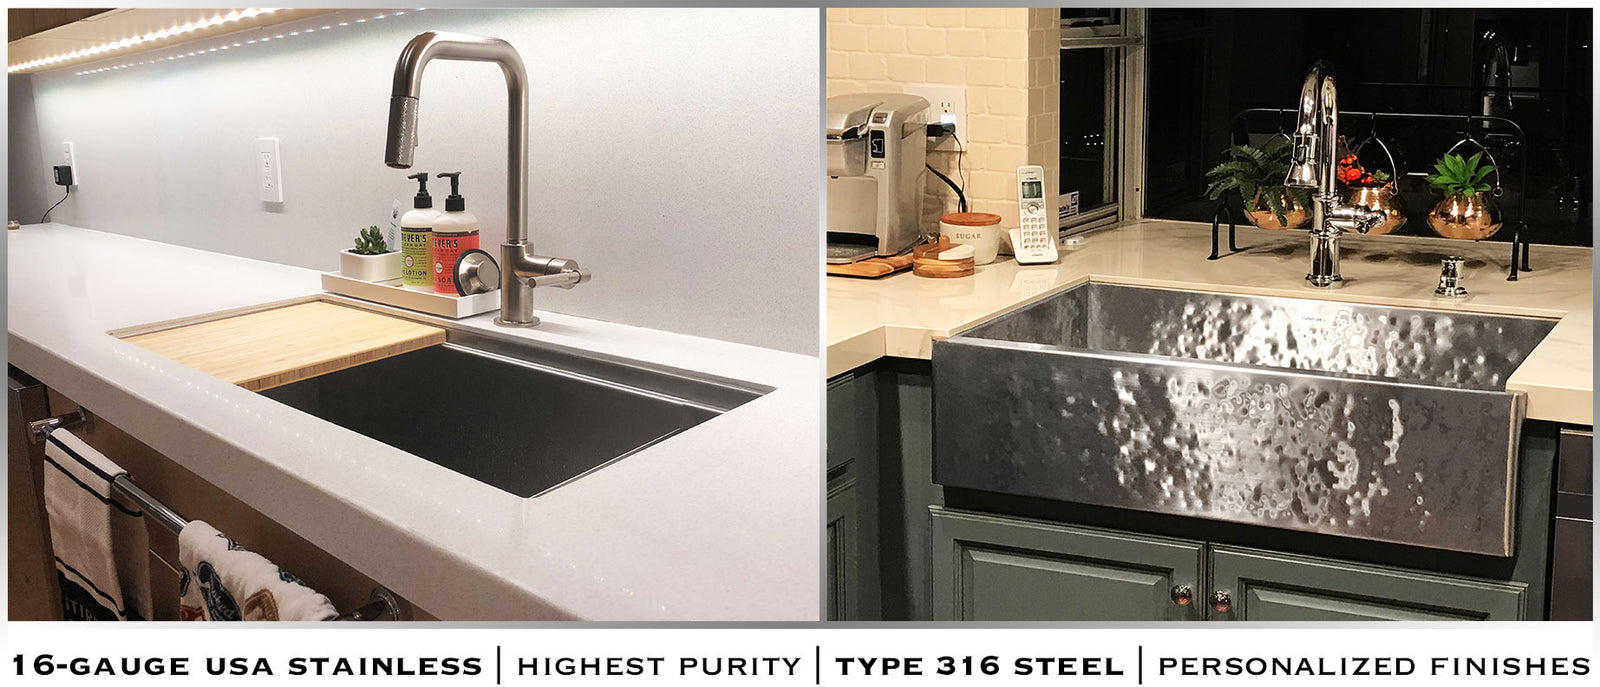 Undermount 16 gauge stainless steel kitchen sinks. Select from hammered and textured type 316 steel finishes in farmhouse or standard under mount installation.